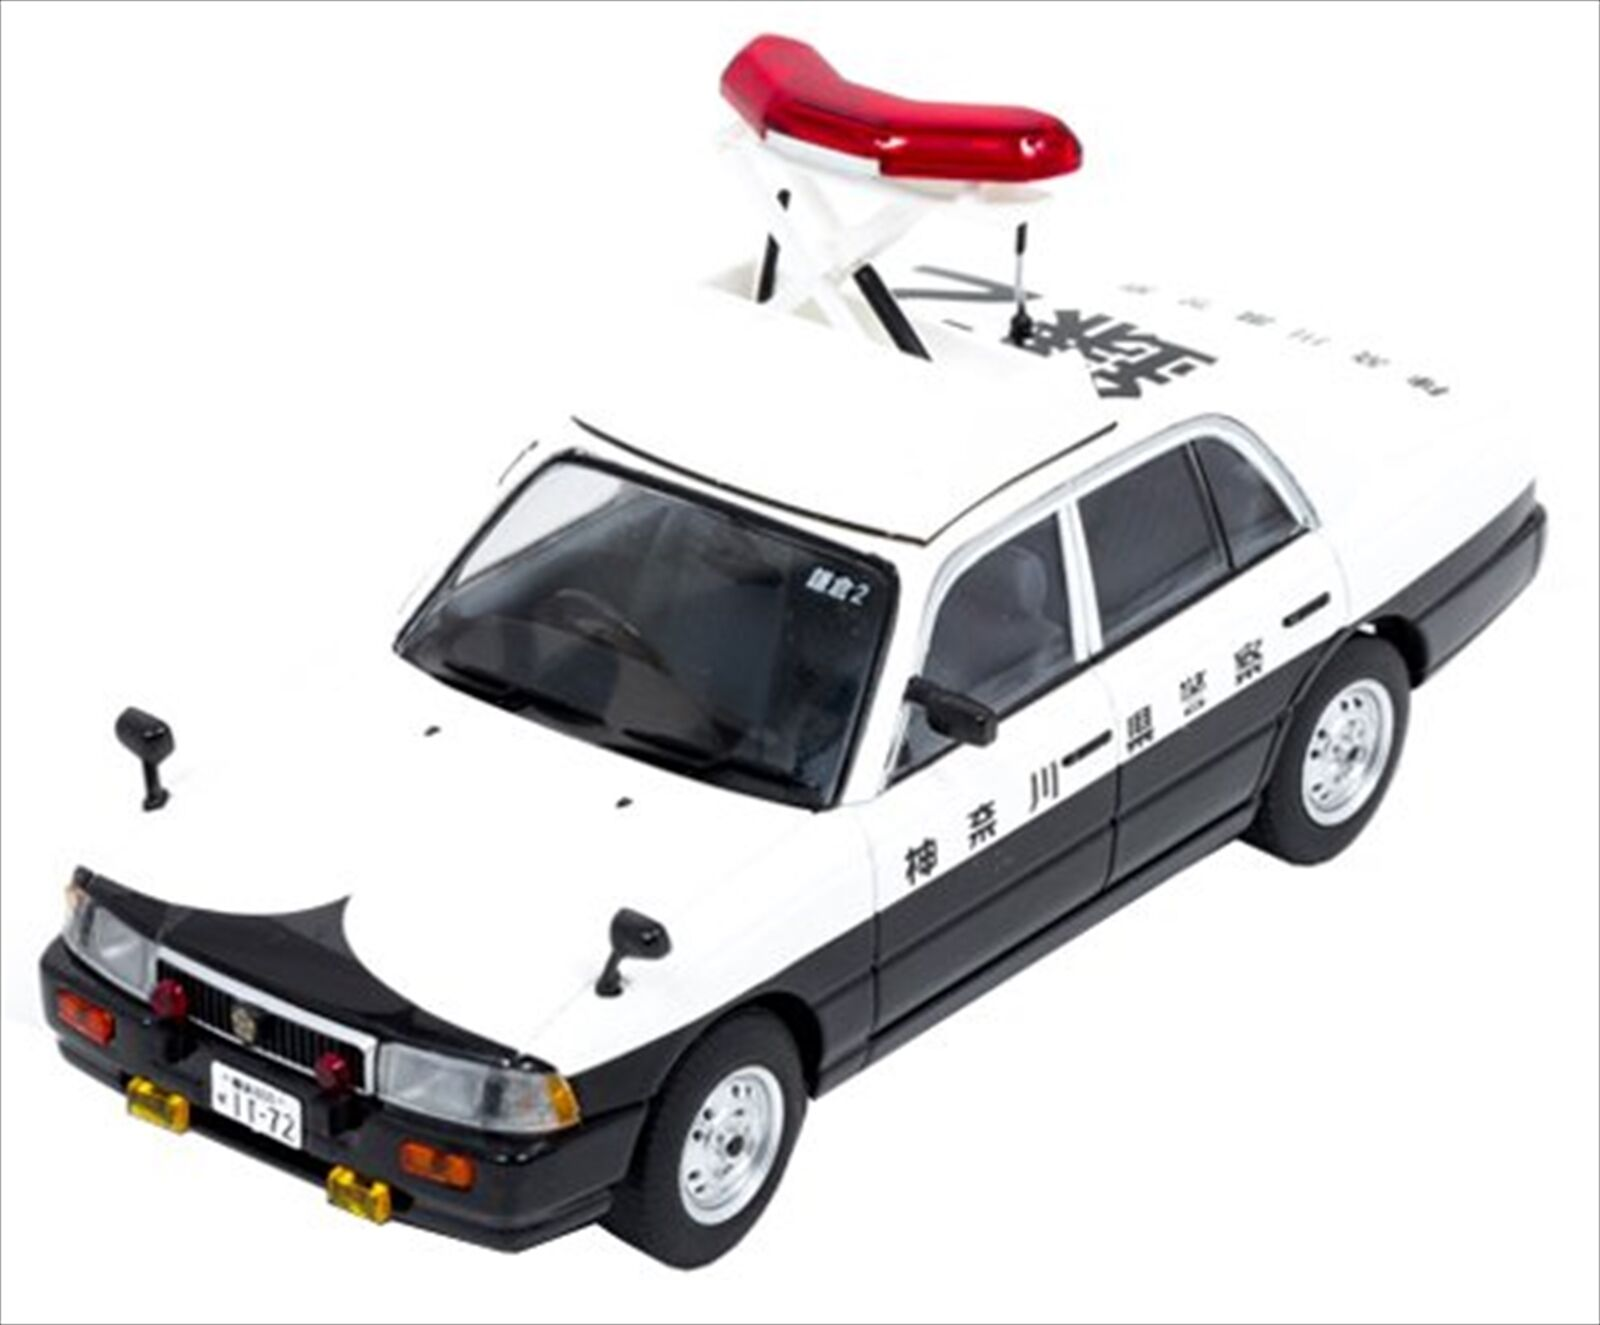 RAI'S 1 43 Nissan Crew 1995 Police Car (Elevator UP Specification) H7439509